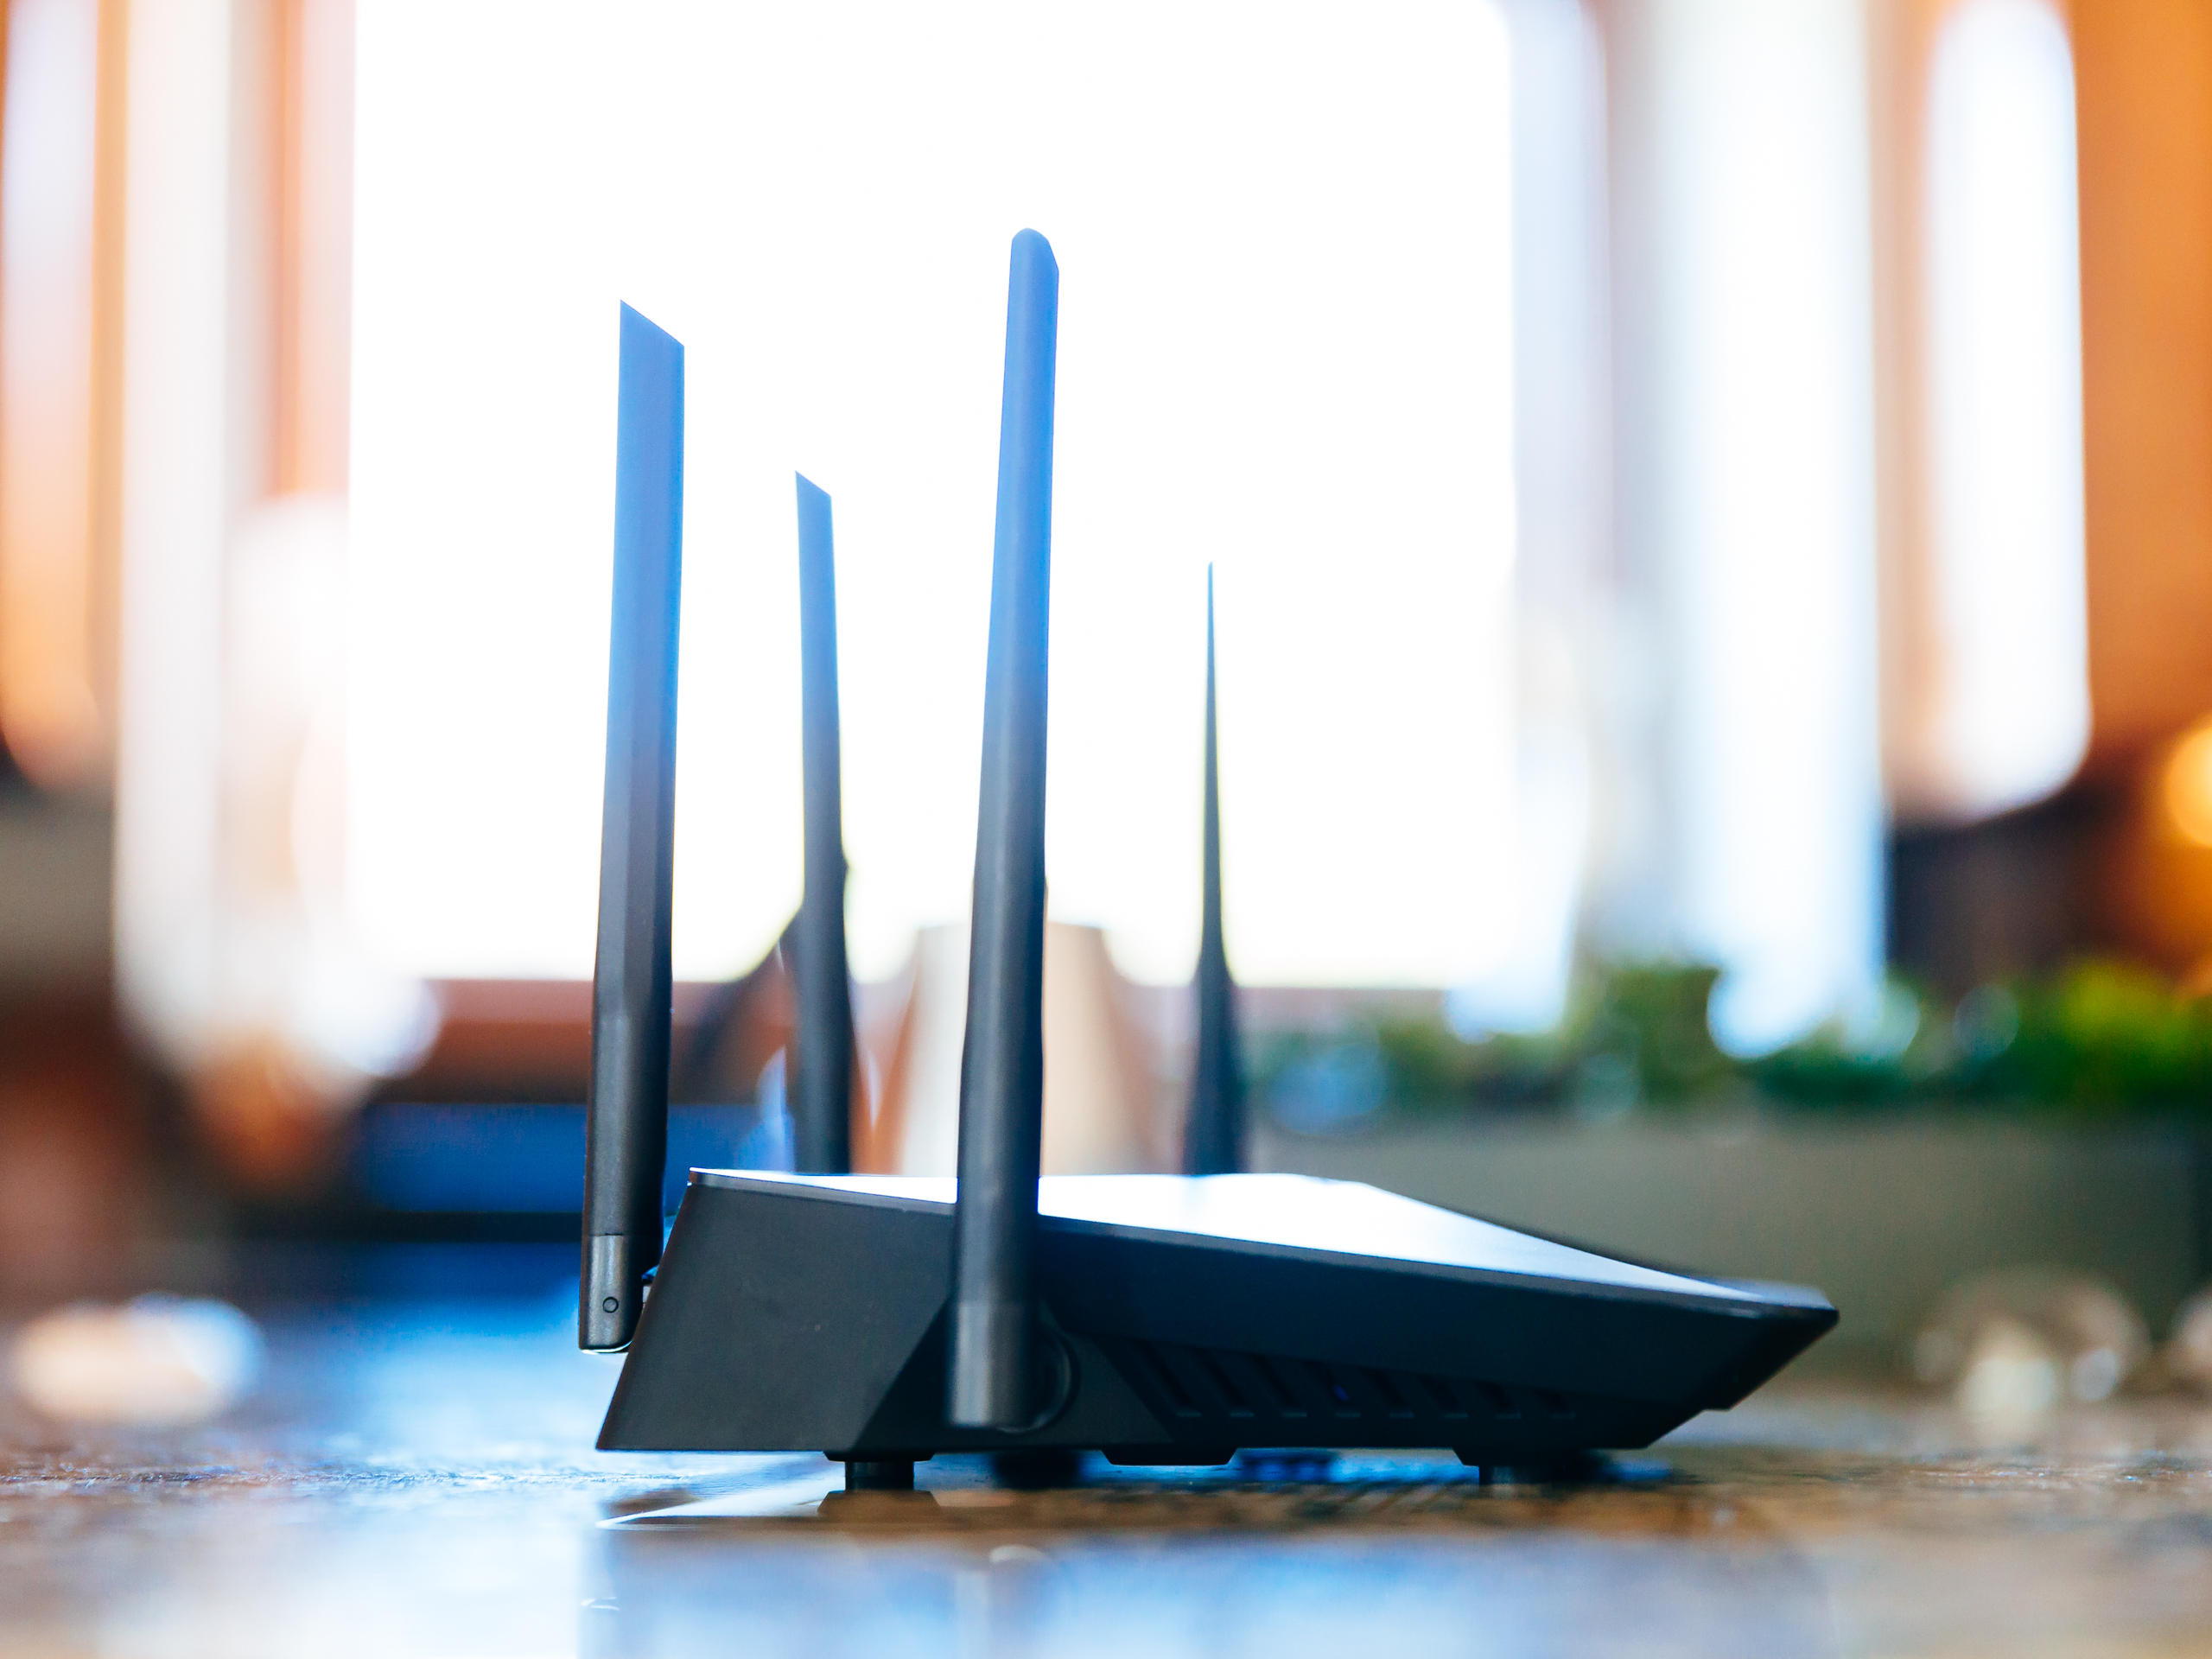 d-link-ac2600-router-product-photos-4